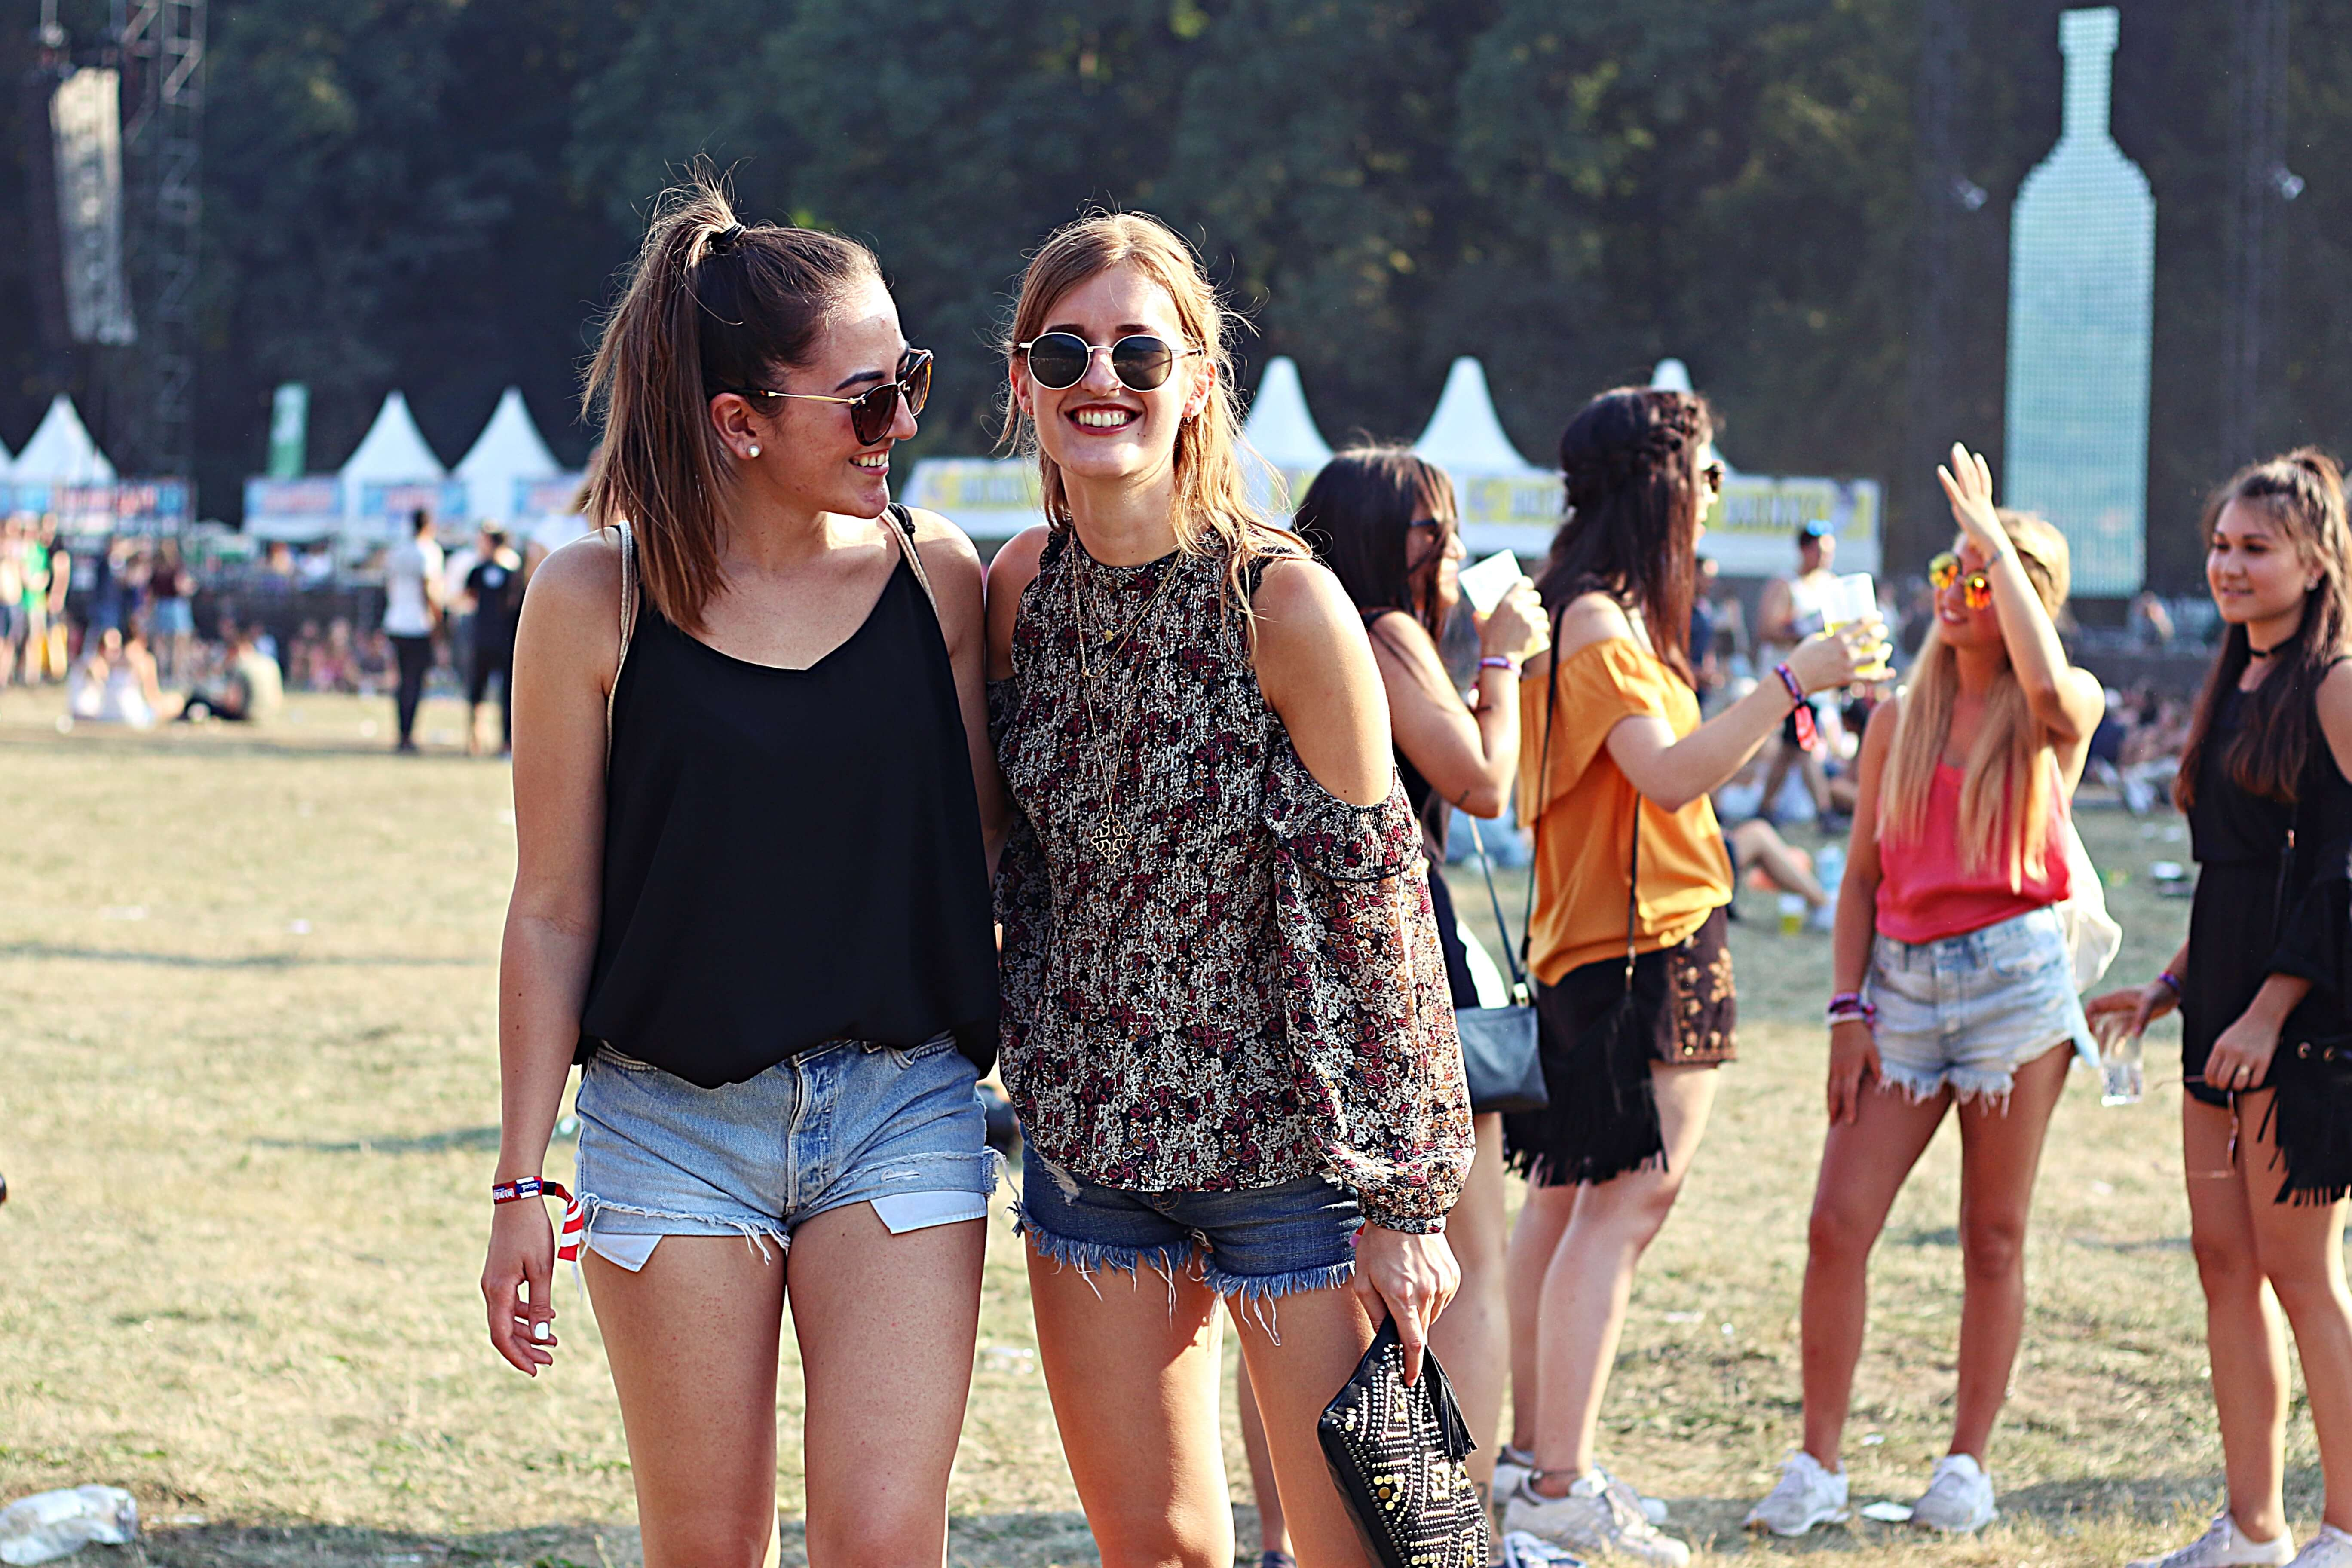 festival-sommer-outfit-girls-shorts-summer-levis